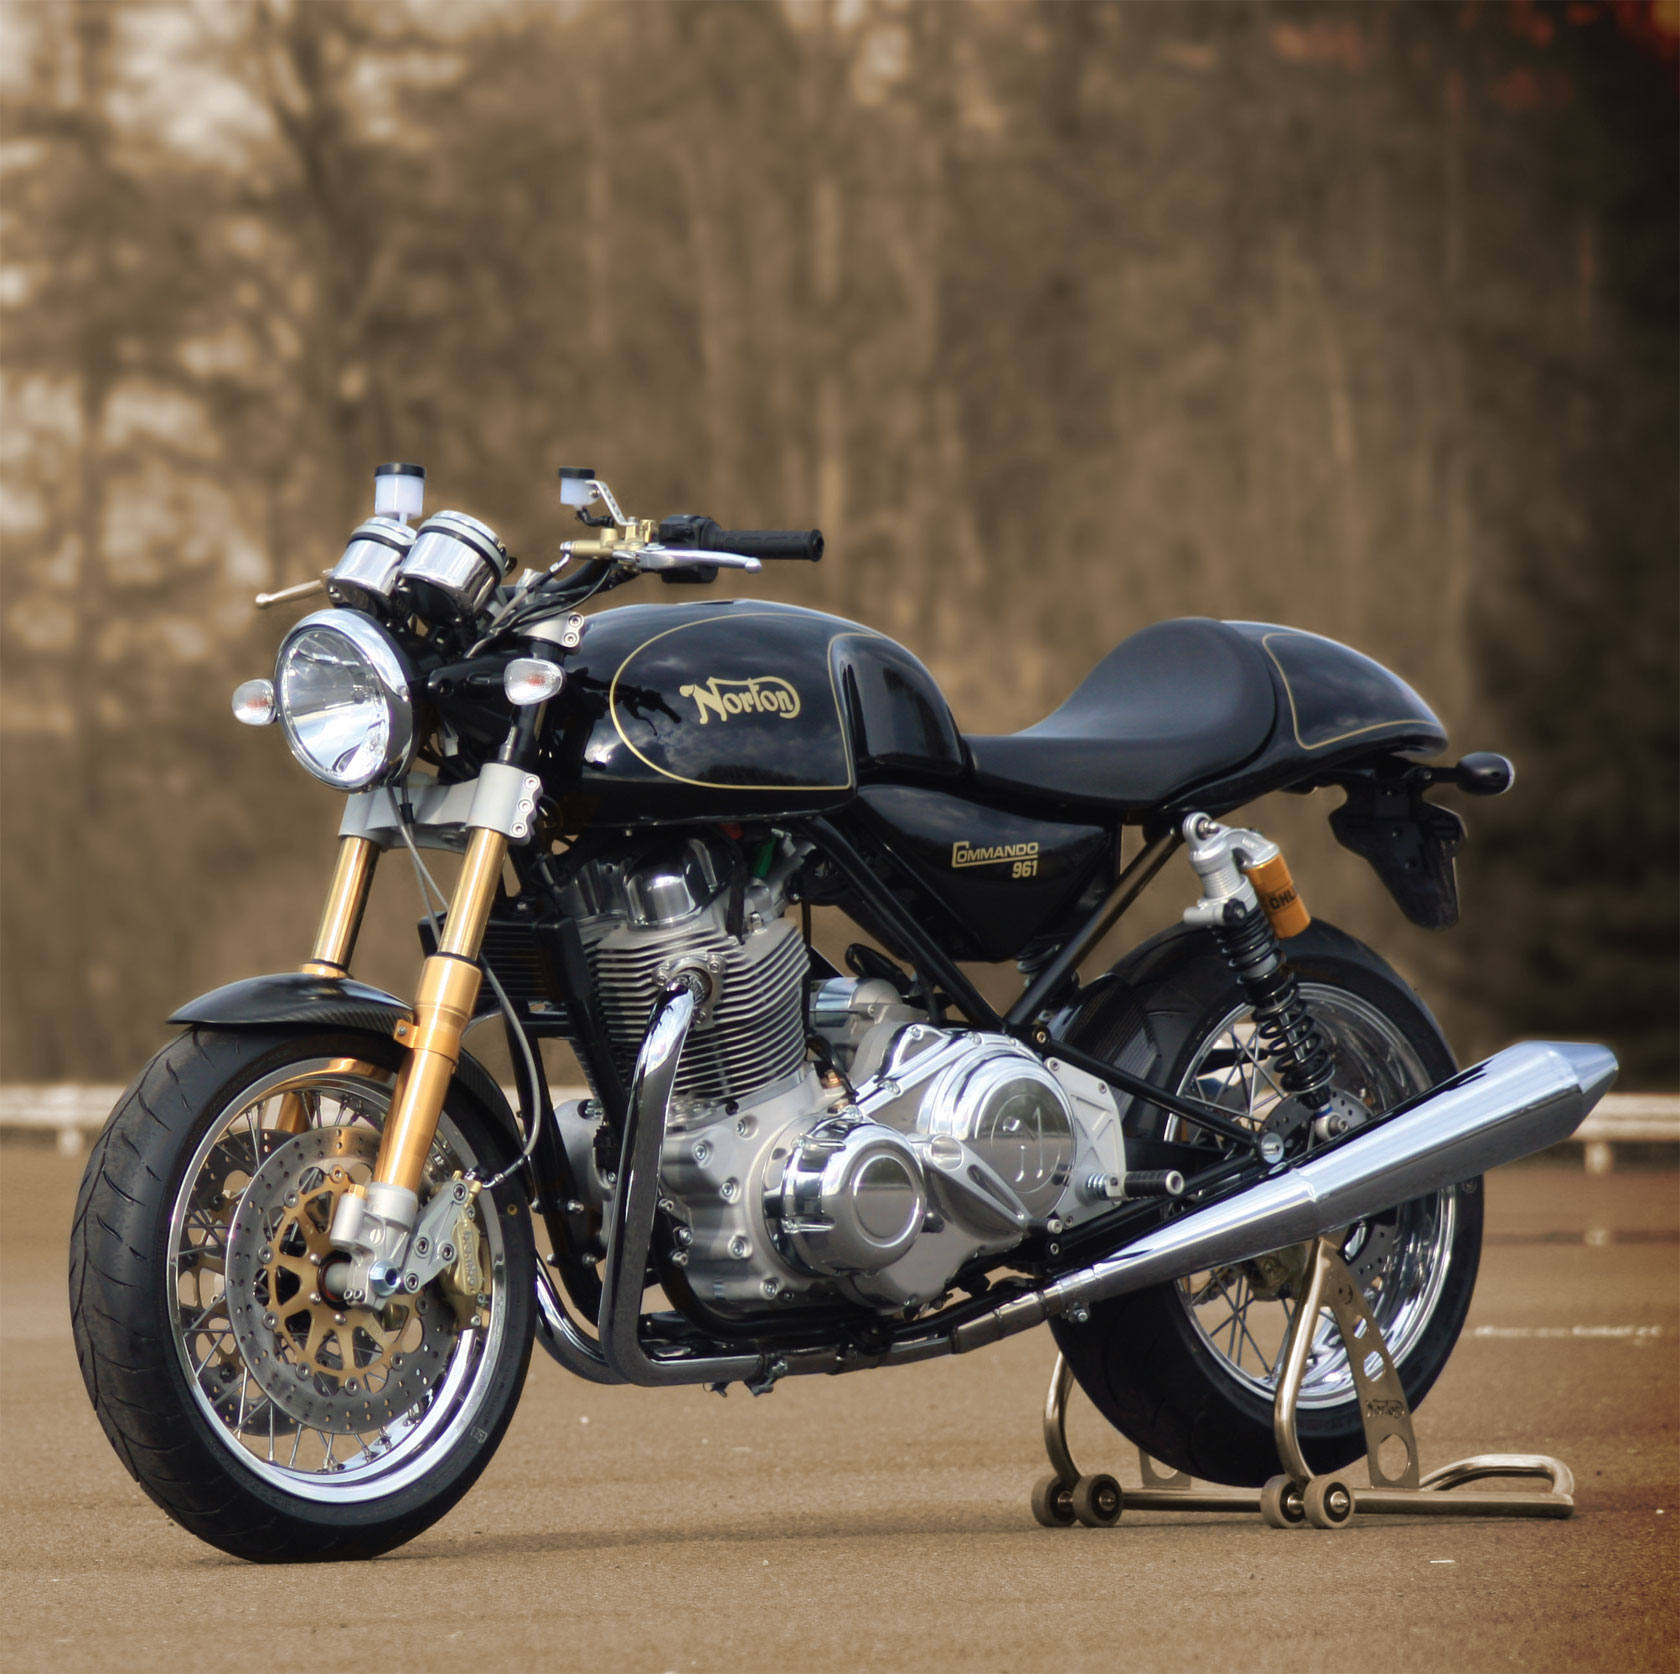 Norton Commando 961 Sport images #117631